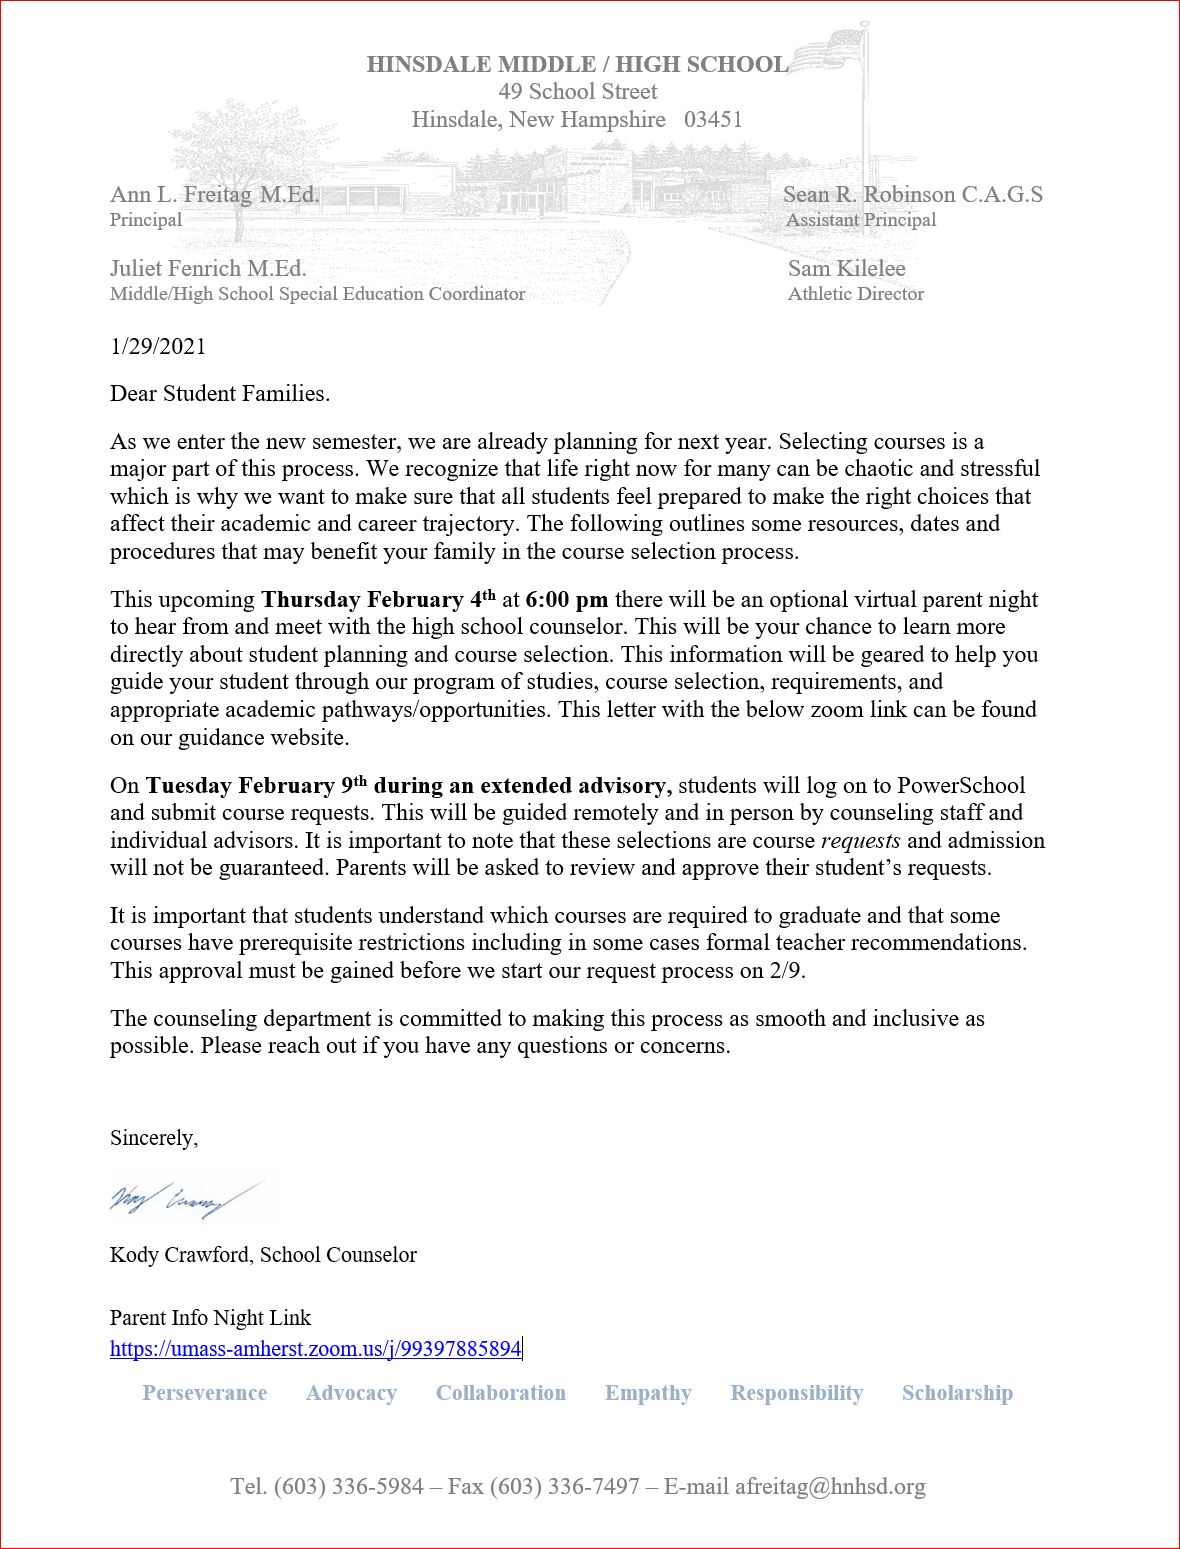 Photo of course selection letter